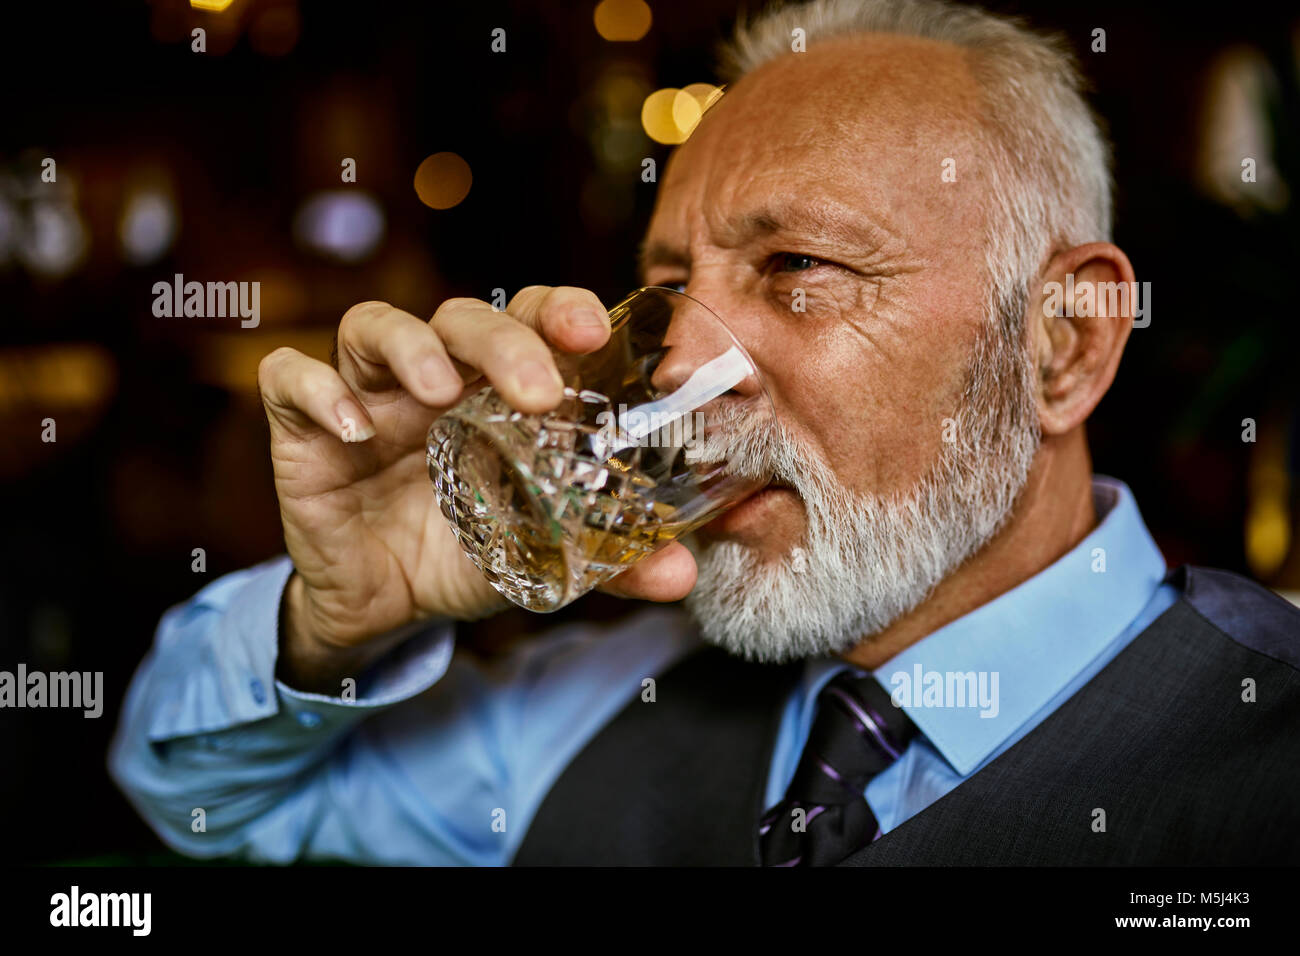 Portrait of senior man drinking élégant de Tumbler Photo Stock